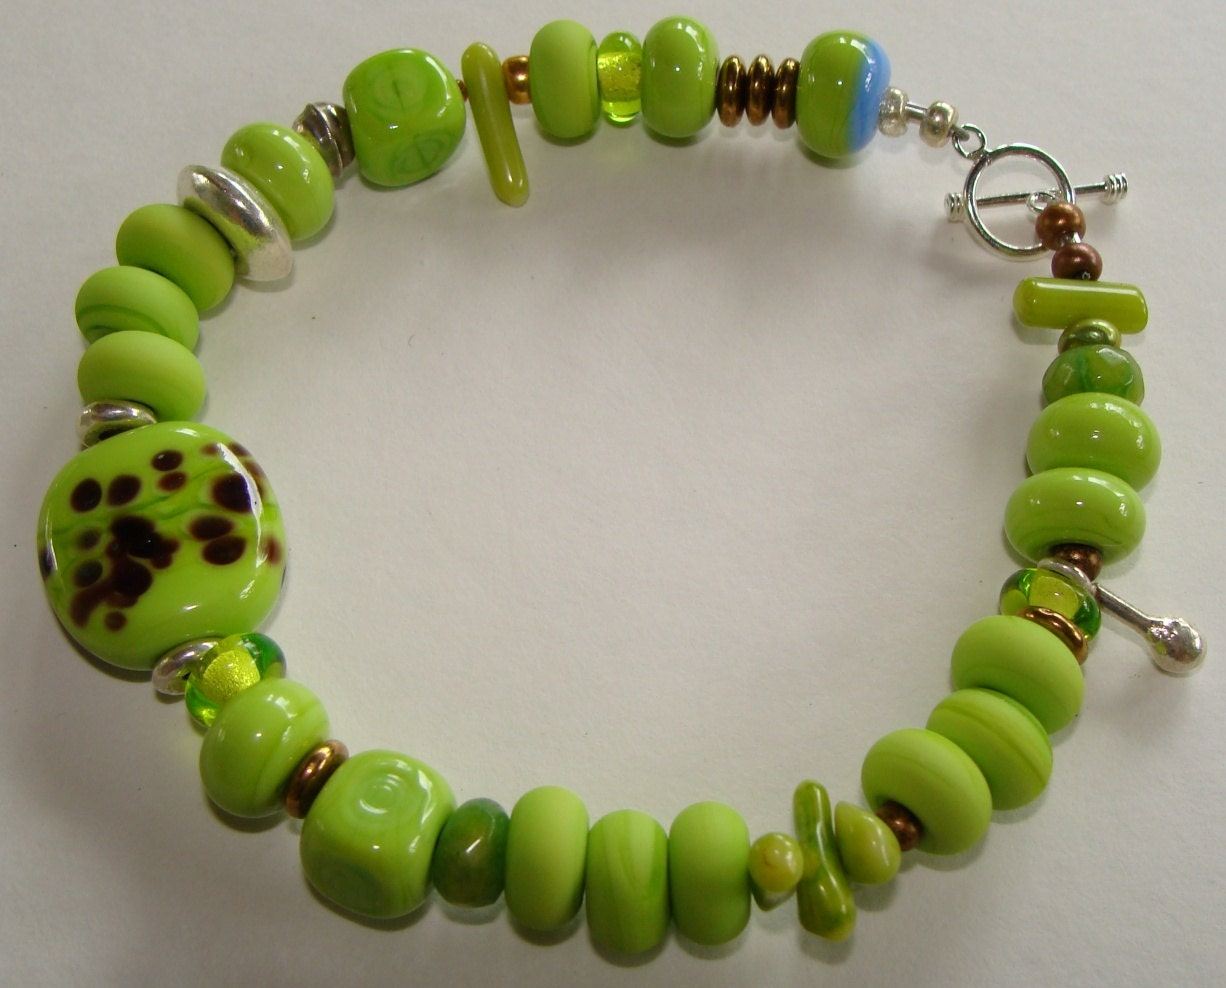 Lime Green Lampwork Glass Beads Treasure Statement Bracelet Handmade with Solid Silver - indigobjects